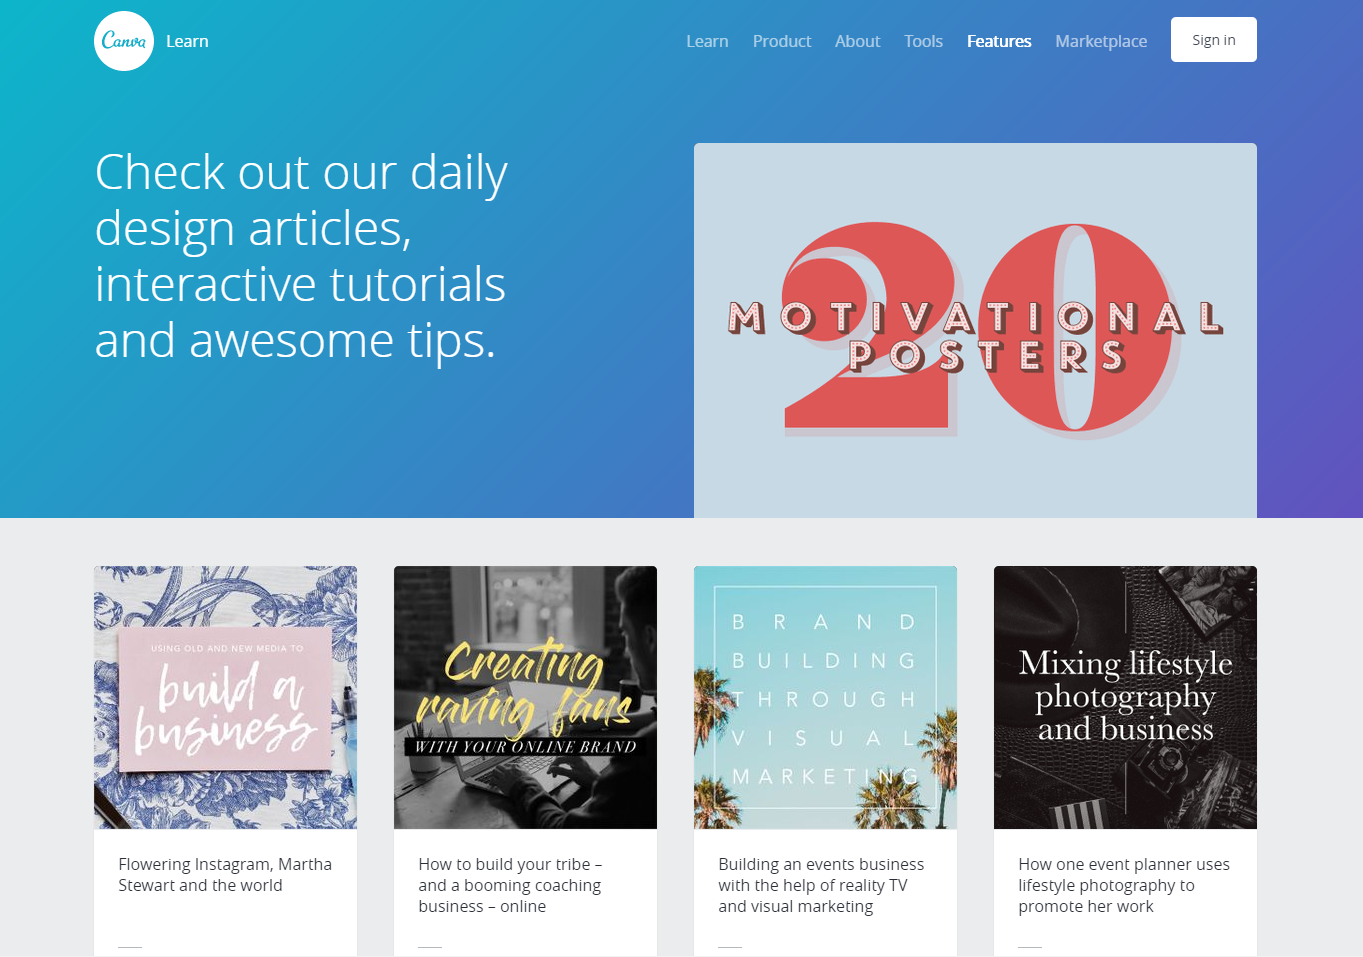 100+ [ Graphic Design Tutorials By Canva ] | How To Design ...